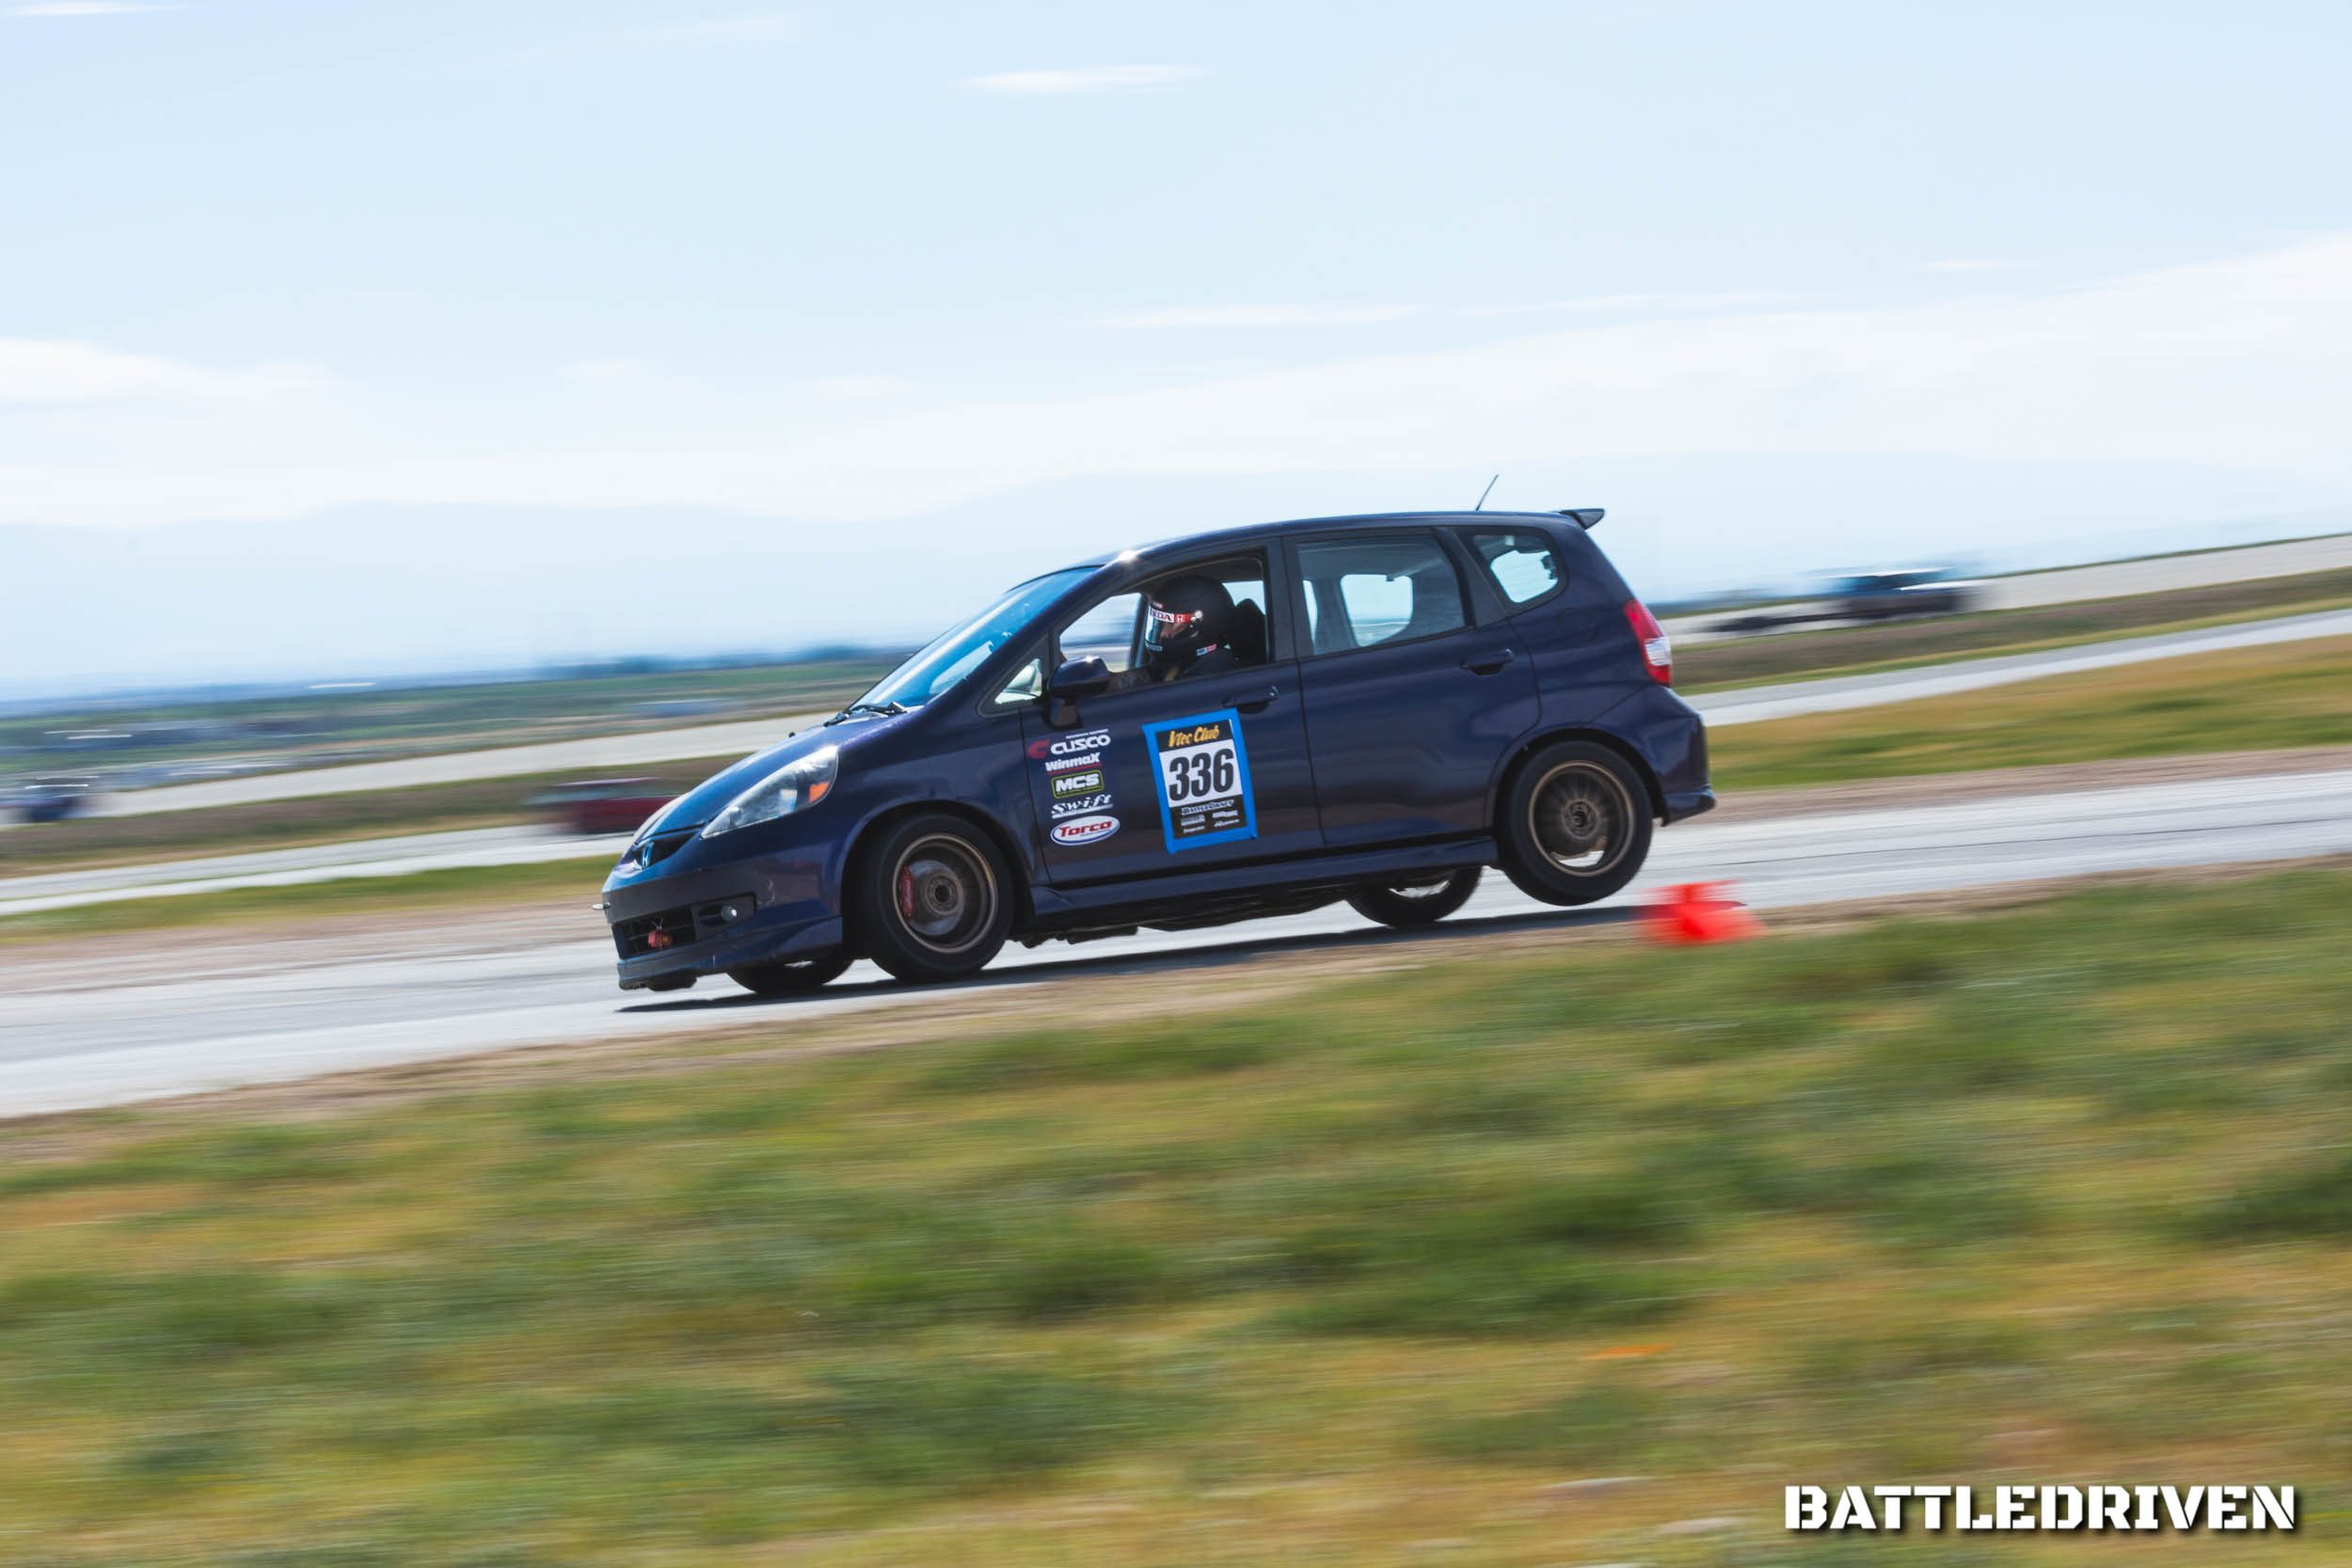 Remember the real MVP that helped another Honda Fit racer out of a sticky situation? Rocco B. (@rollerboots666) three-wheeling after the chicane, because he was definitely the MVP this day.